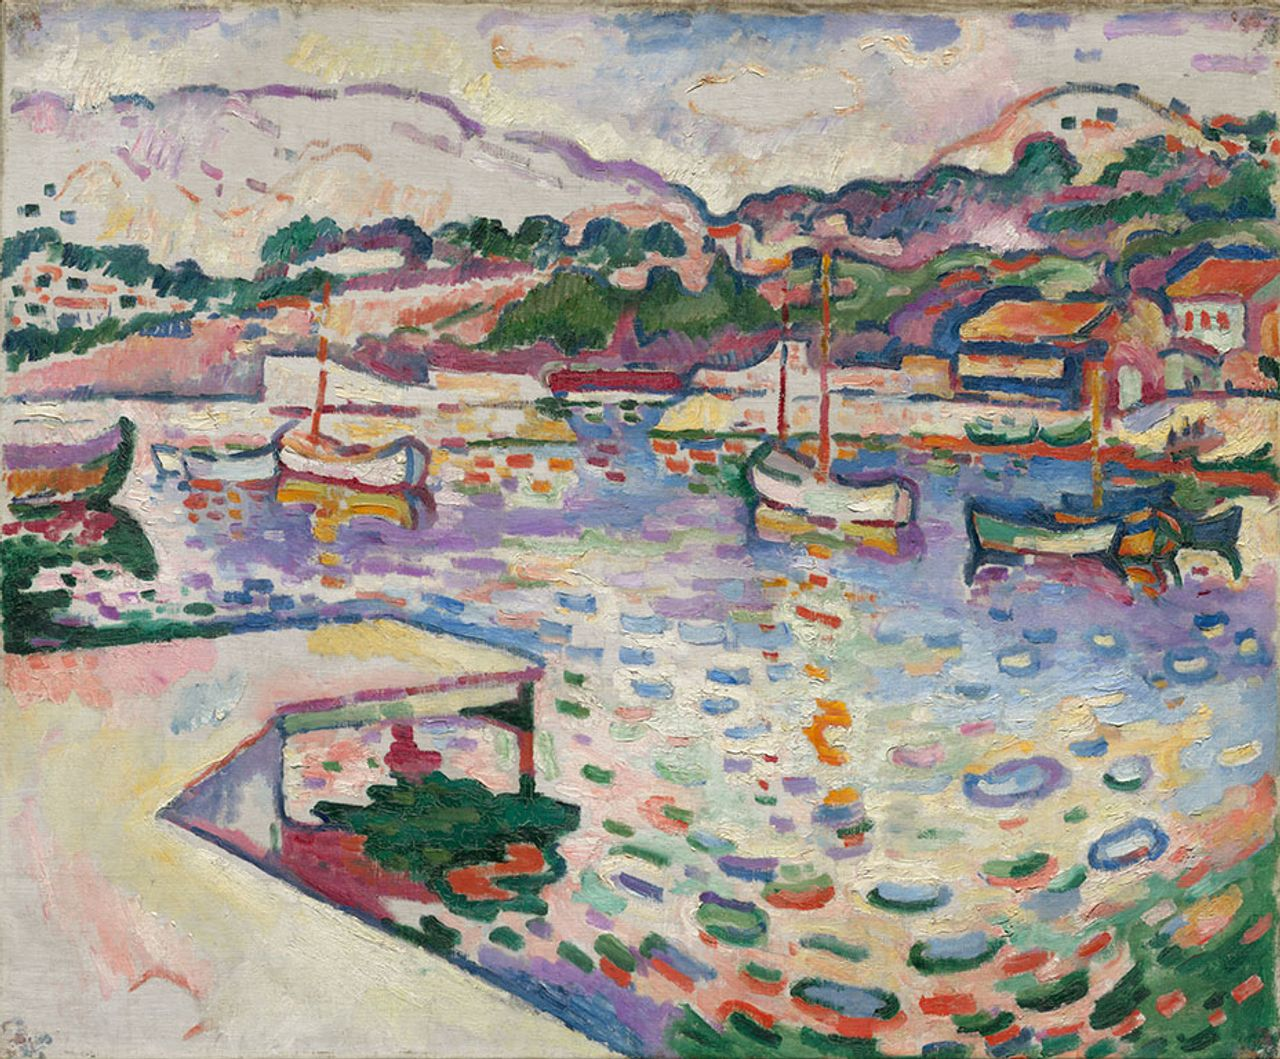 Braque, The Port de l'Estaque, The Pier (1906) Nancy F. and Joseph P. Keithley Collection Gift, 2020/Cleveland MUseum of Art